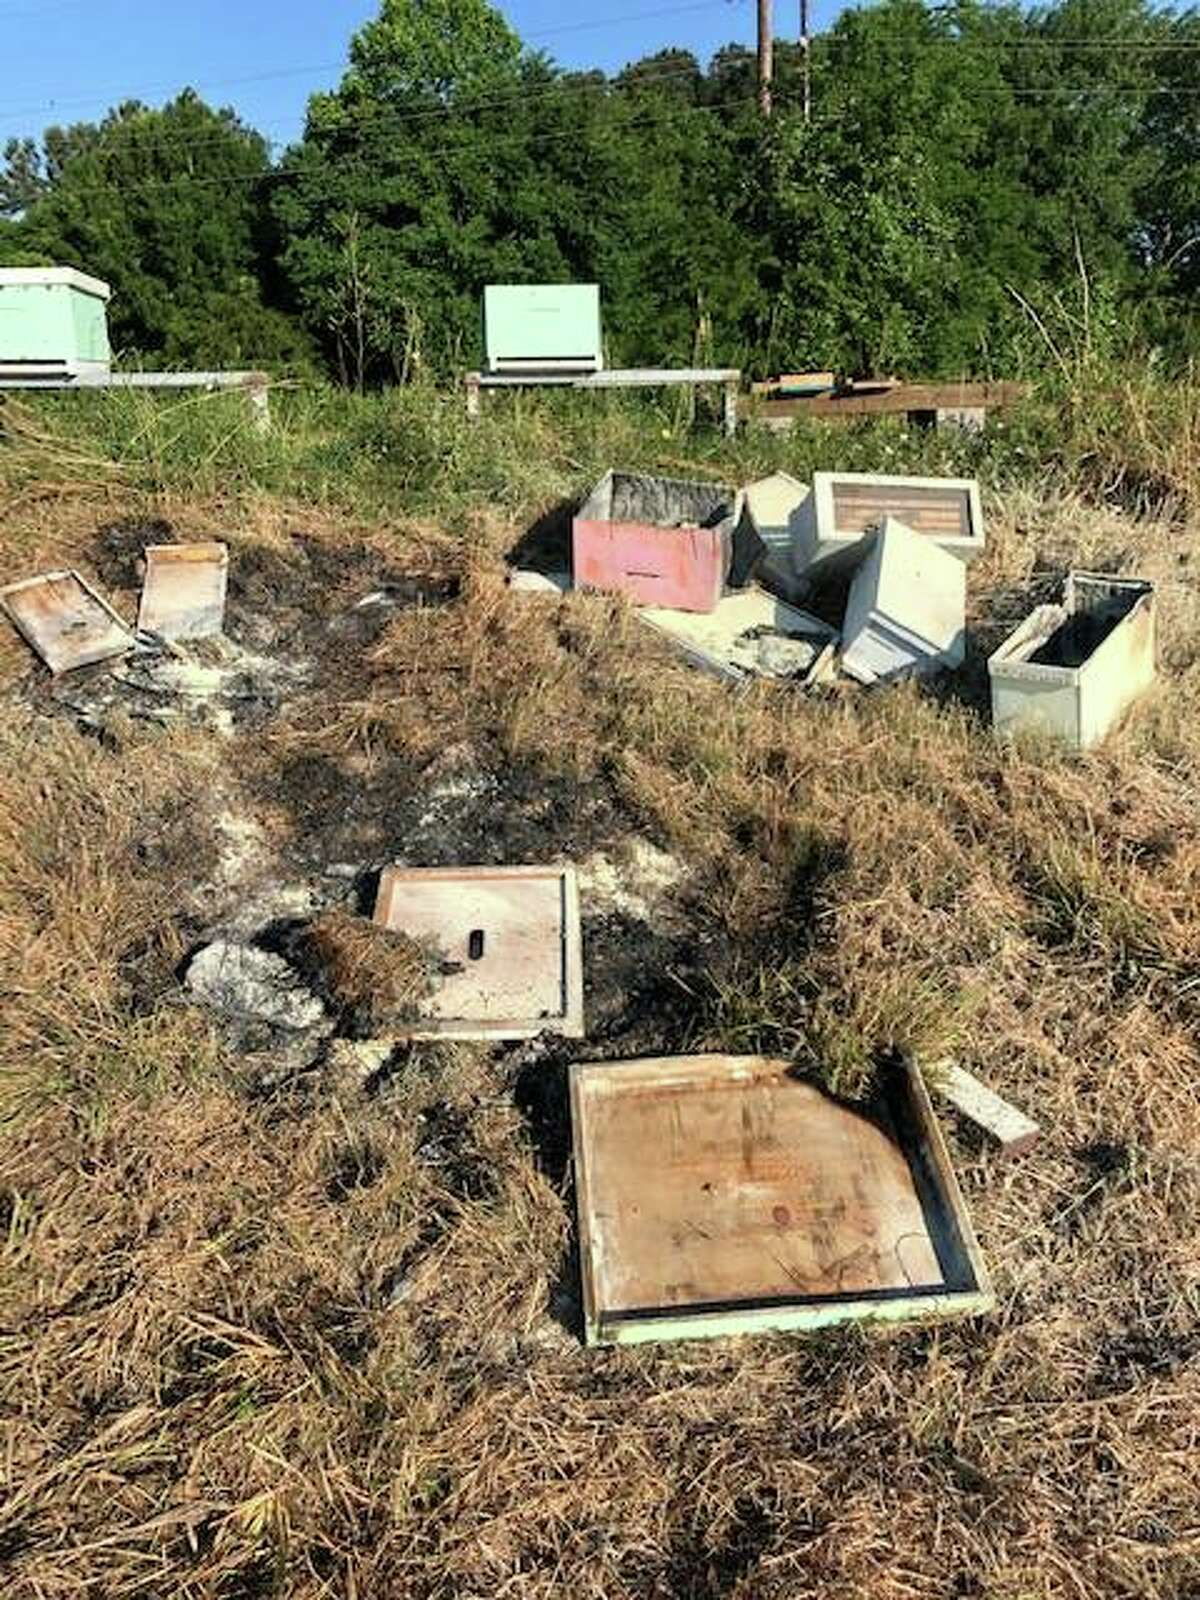 Police are searching for the person responsible for dumping dozens of beehives out and setting them on fire in Alvin over the weekend.